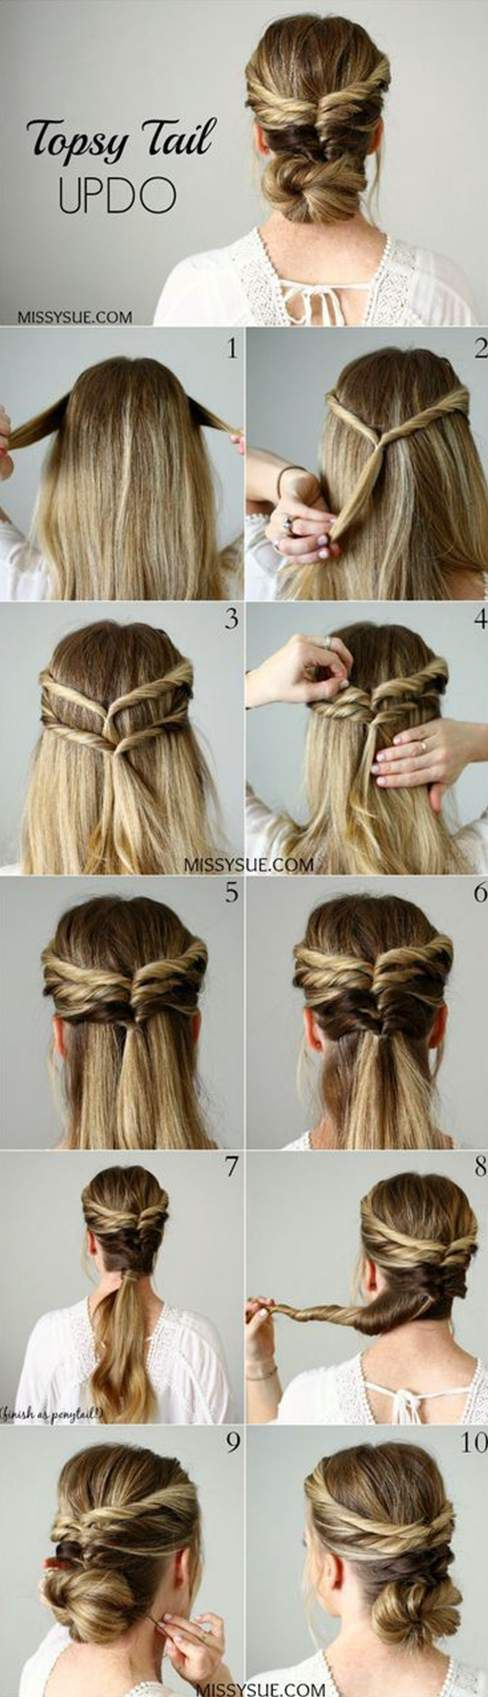 best 25+ 5 minute hairstyles ideas only on pinterest | beach hair